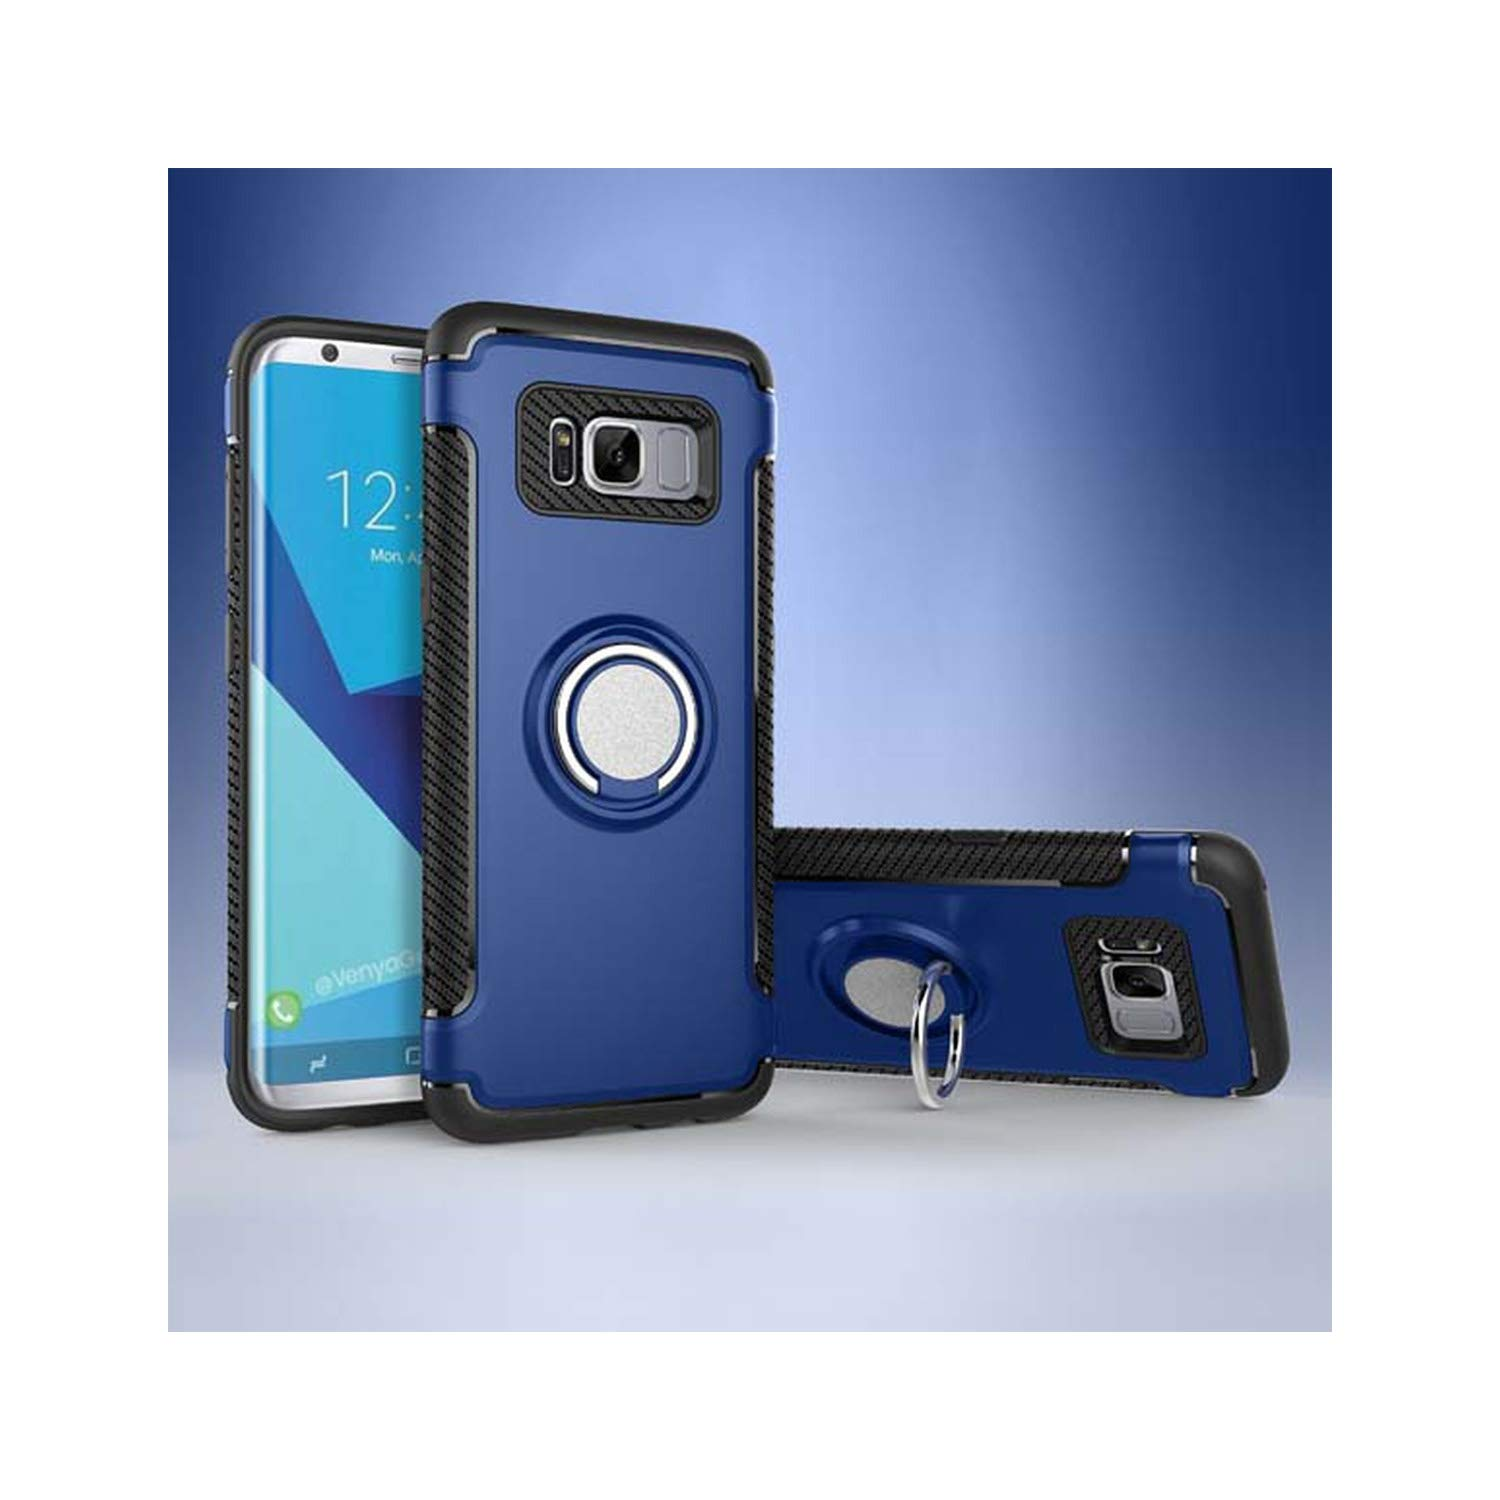 Amazon.com: Shockproof Armor Case for Samsung Galaxy Note 8 ...